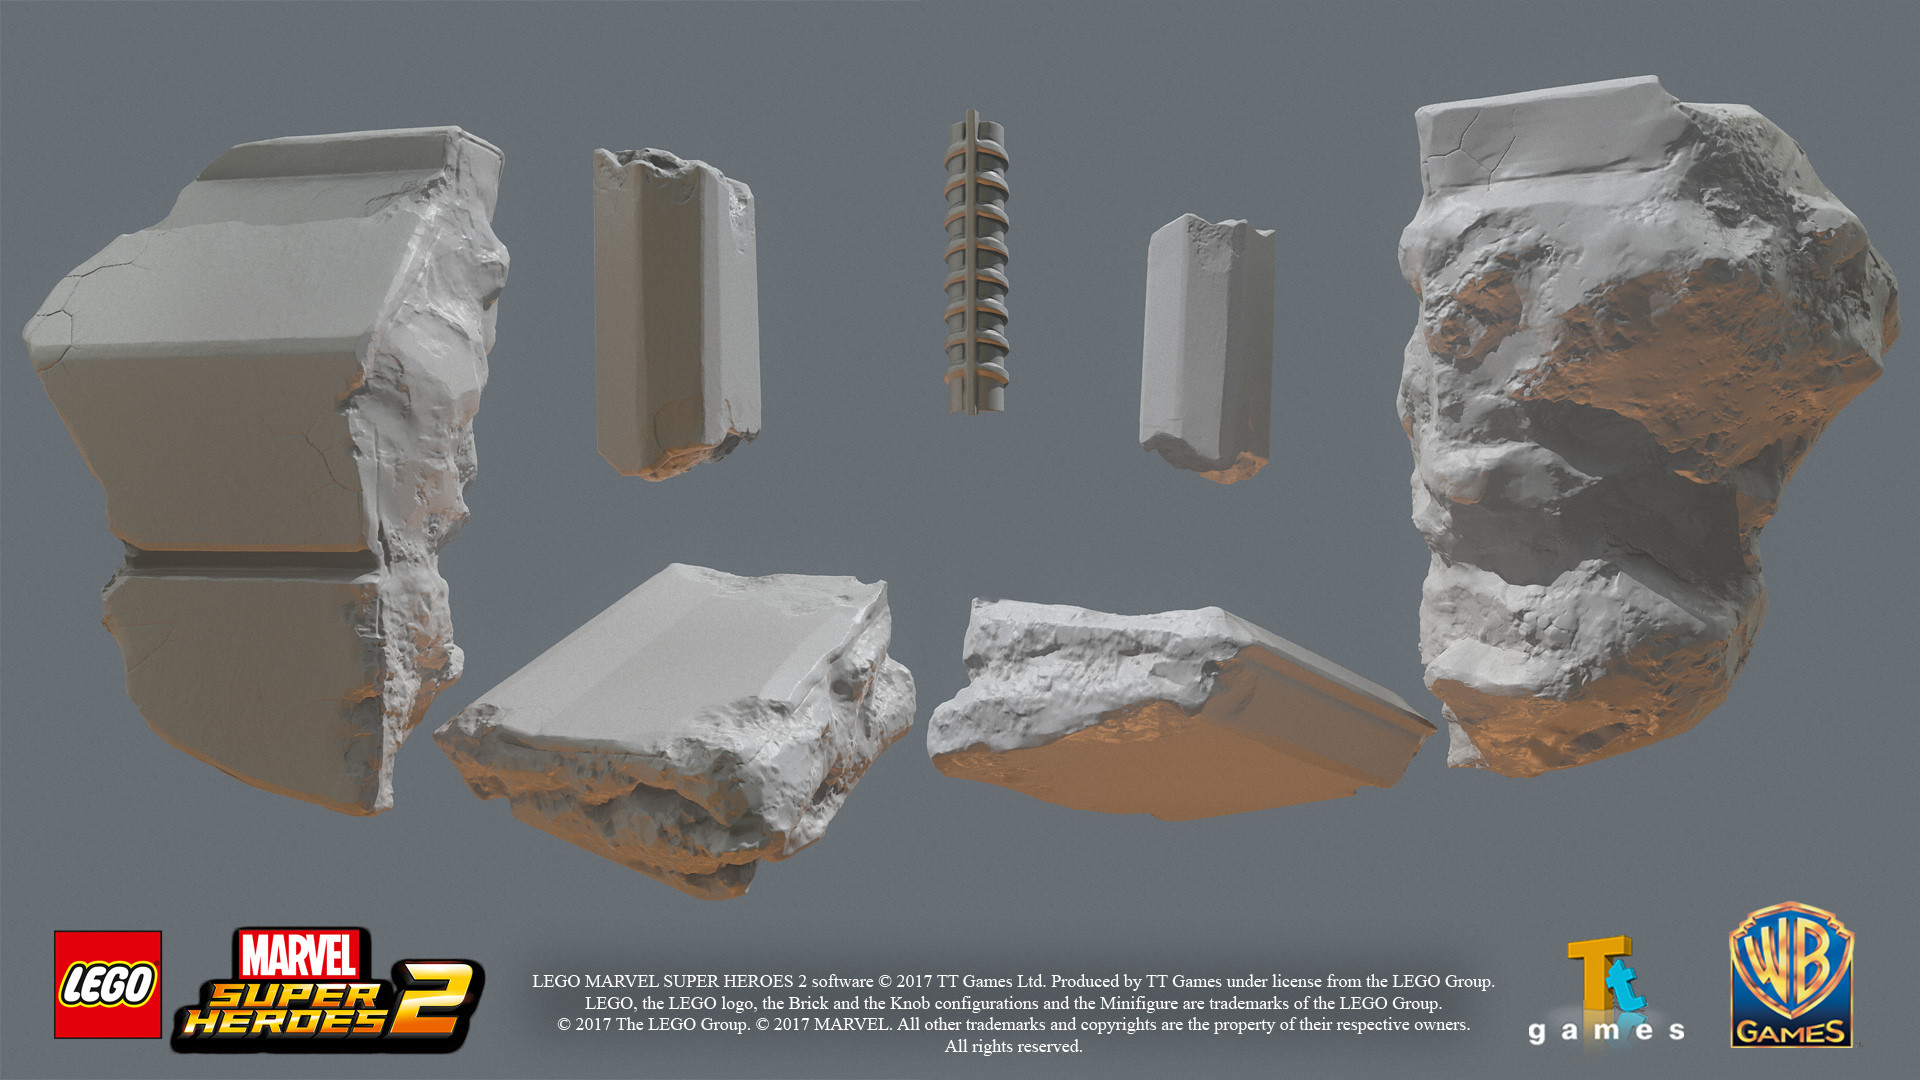 High res models for debris